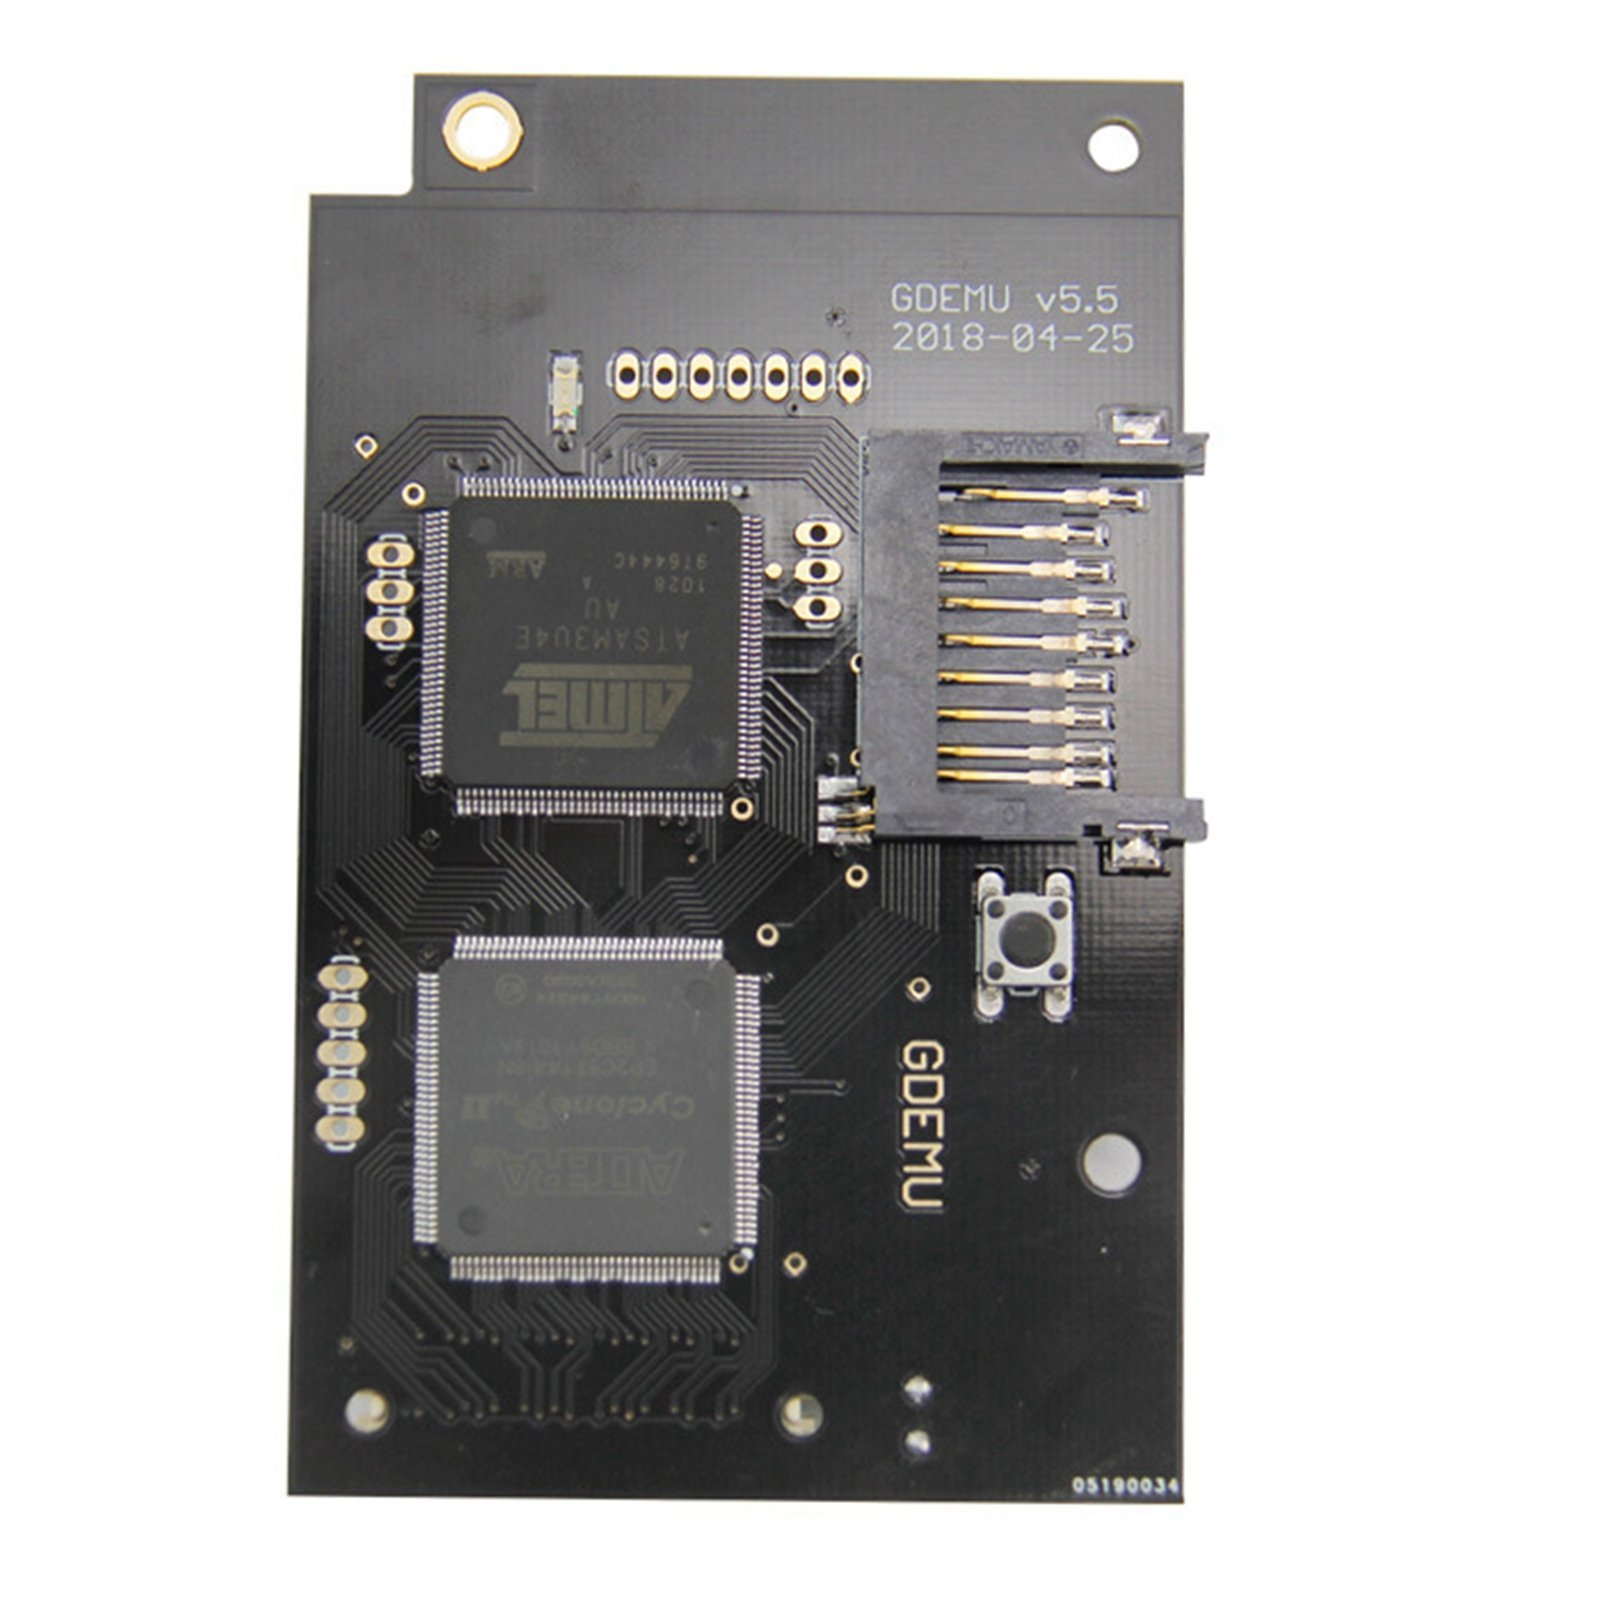 XBERSTAR New GDEMU Optical Drive Simulation Board Card for SEGA Dreamcast DC Game Machine the Second Generation Built-in Free Disk by XBERSTAR (Image #2)